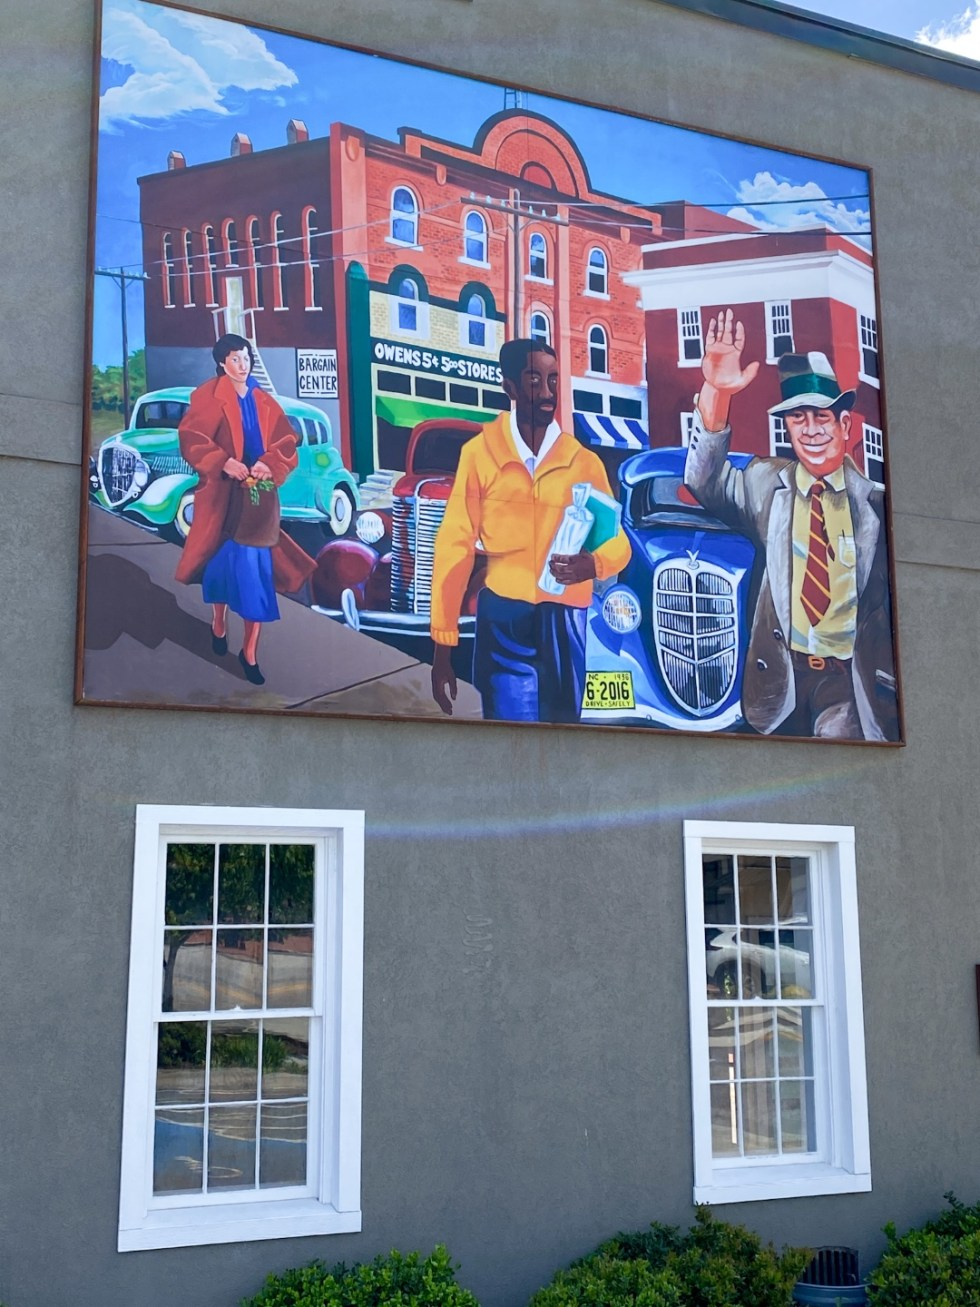 An Afternoon Trip to Franklin County, NC - I'm Fixin' To - @imfixintoblog | Franklin County NC by popular North Carolina travel blog, I'm Fixin' To: image of a wall mural.